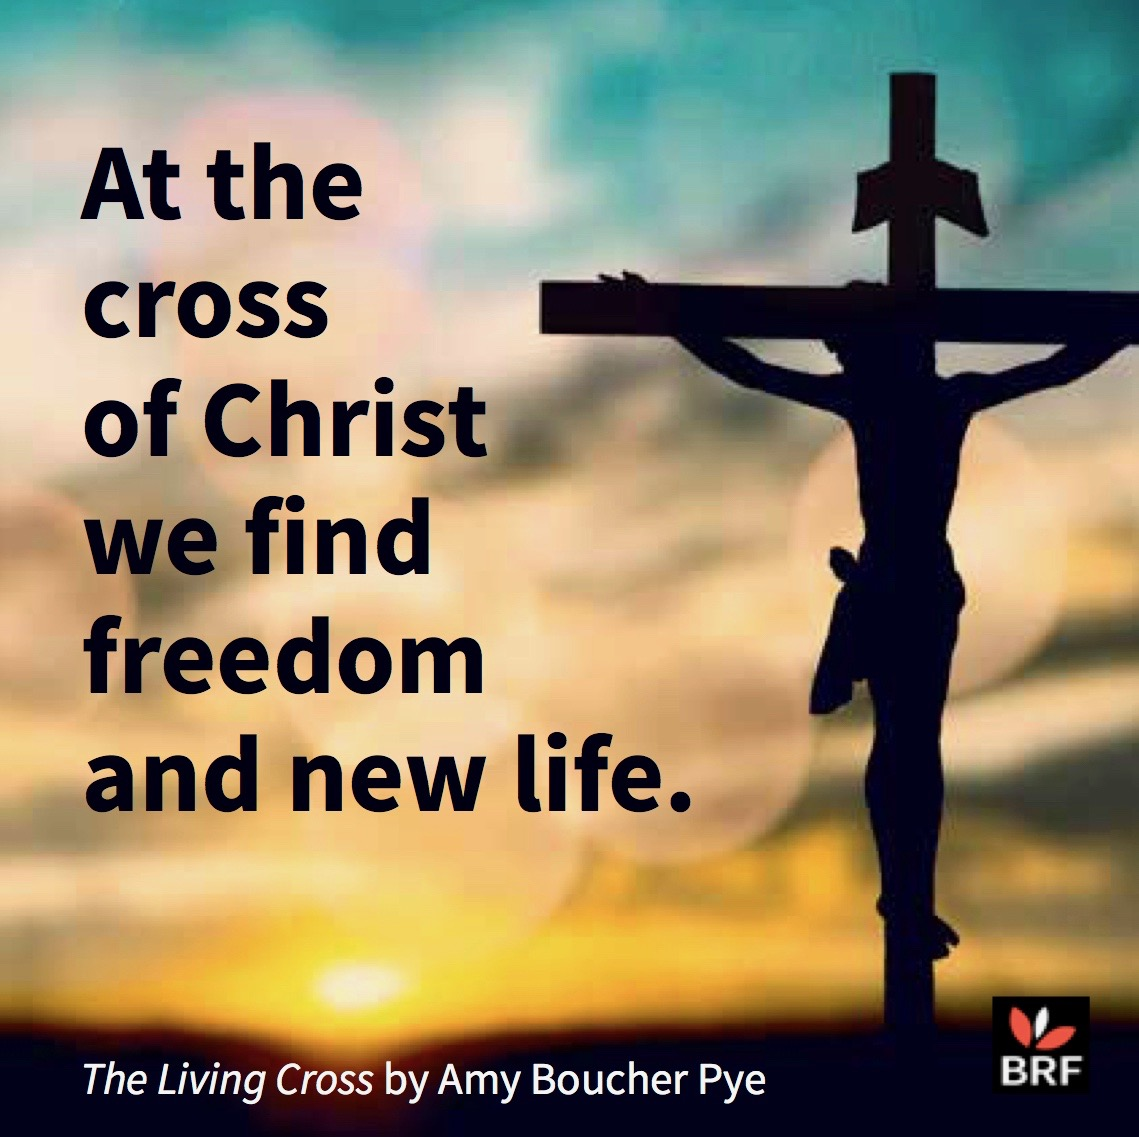 amy boucher pye the living cross means freedom